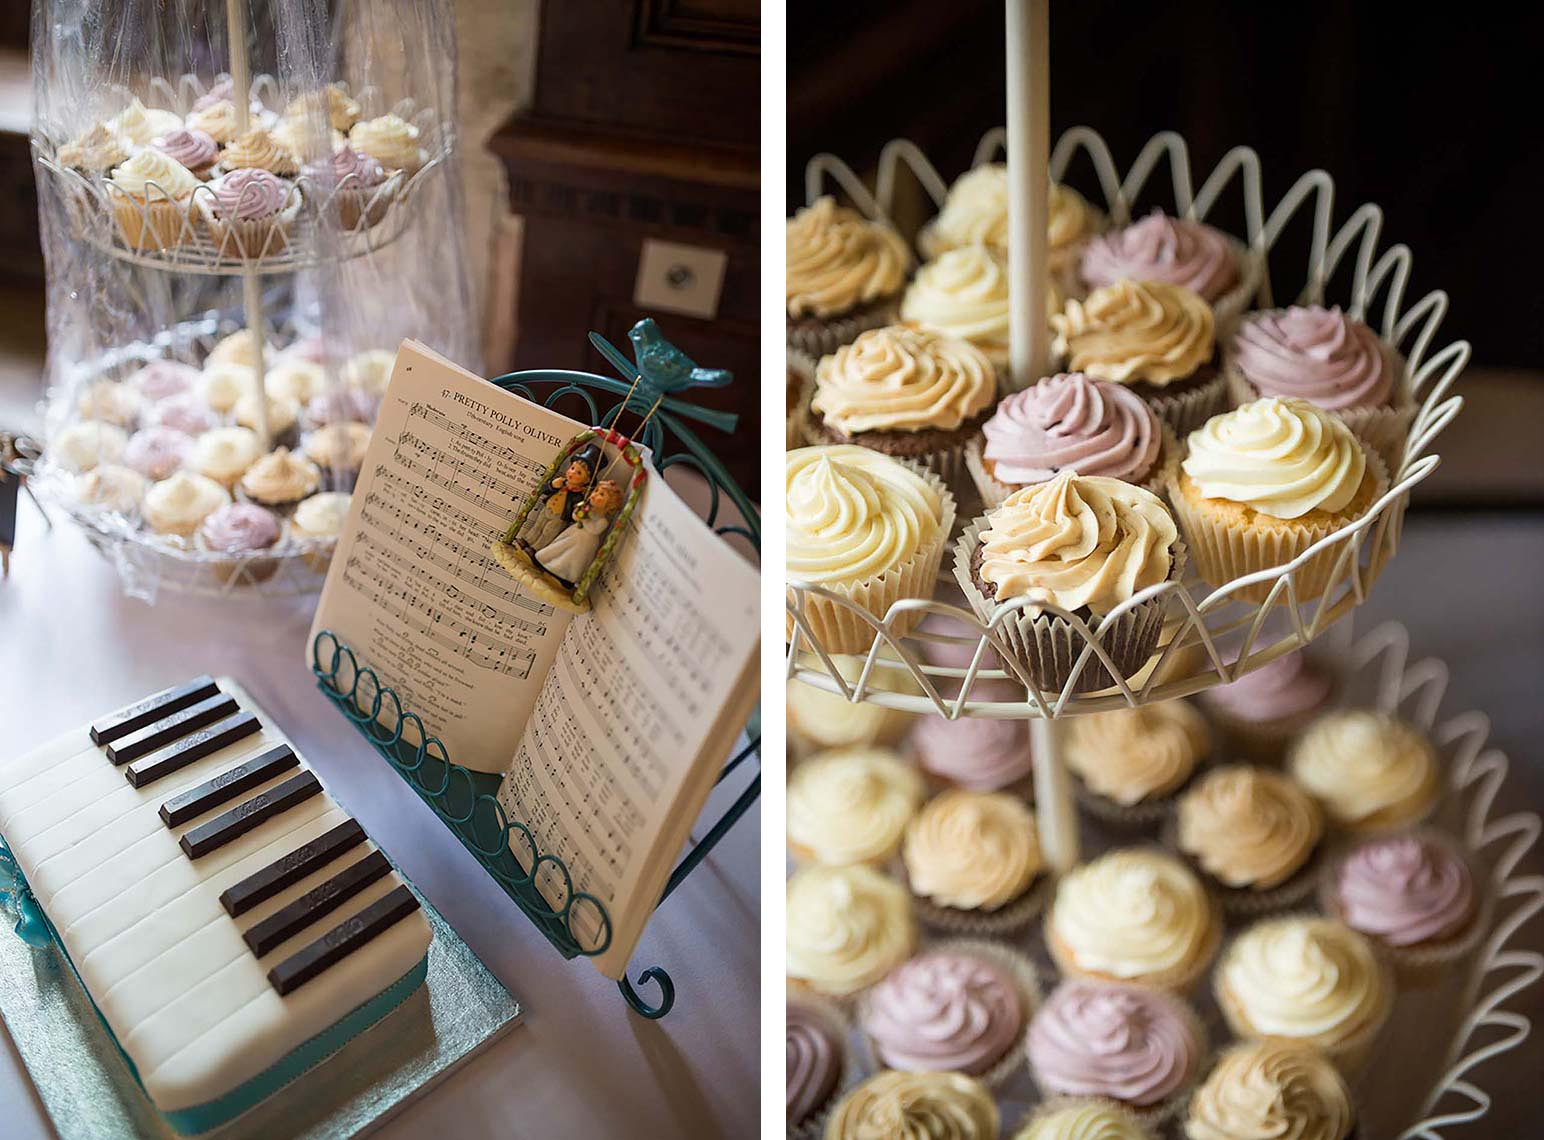 cupcakes-music-piano-cake-wedding-theme-creative-05